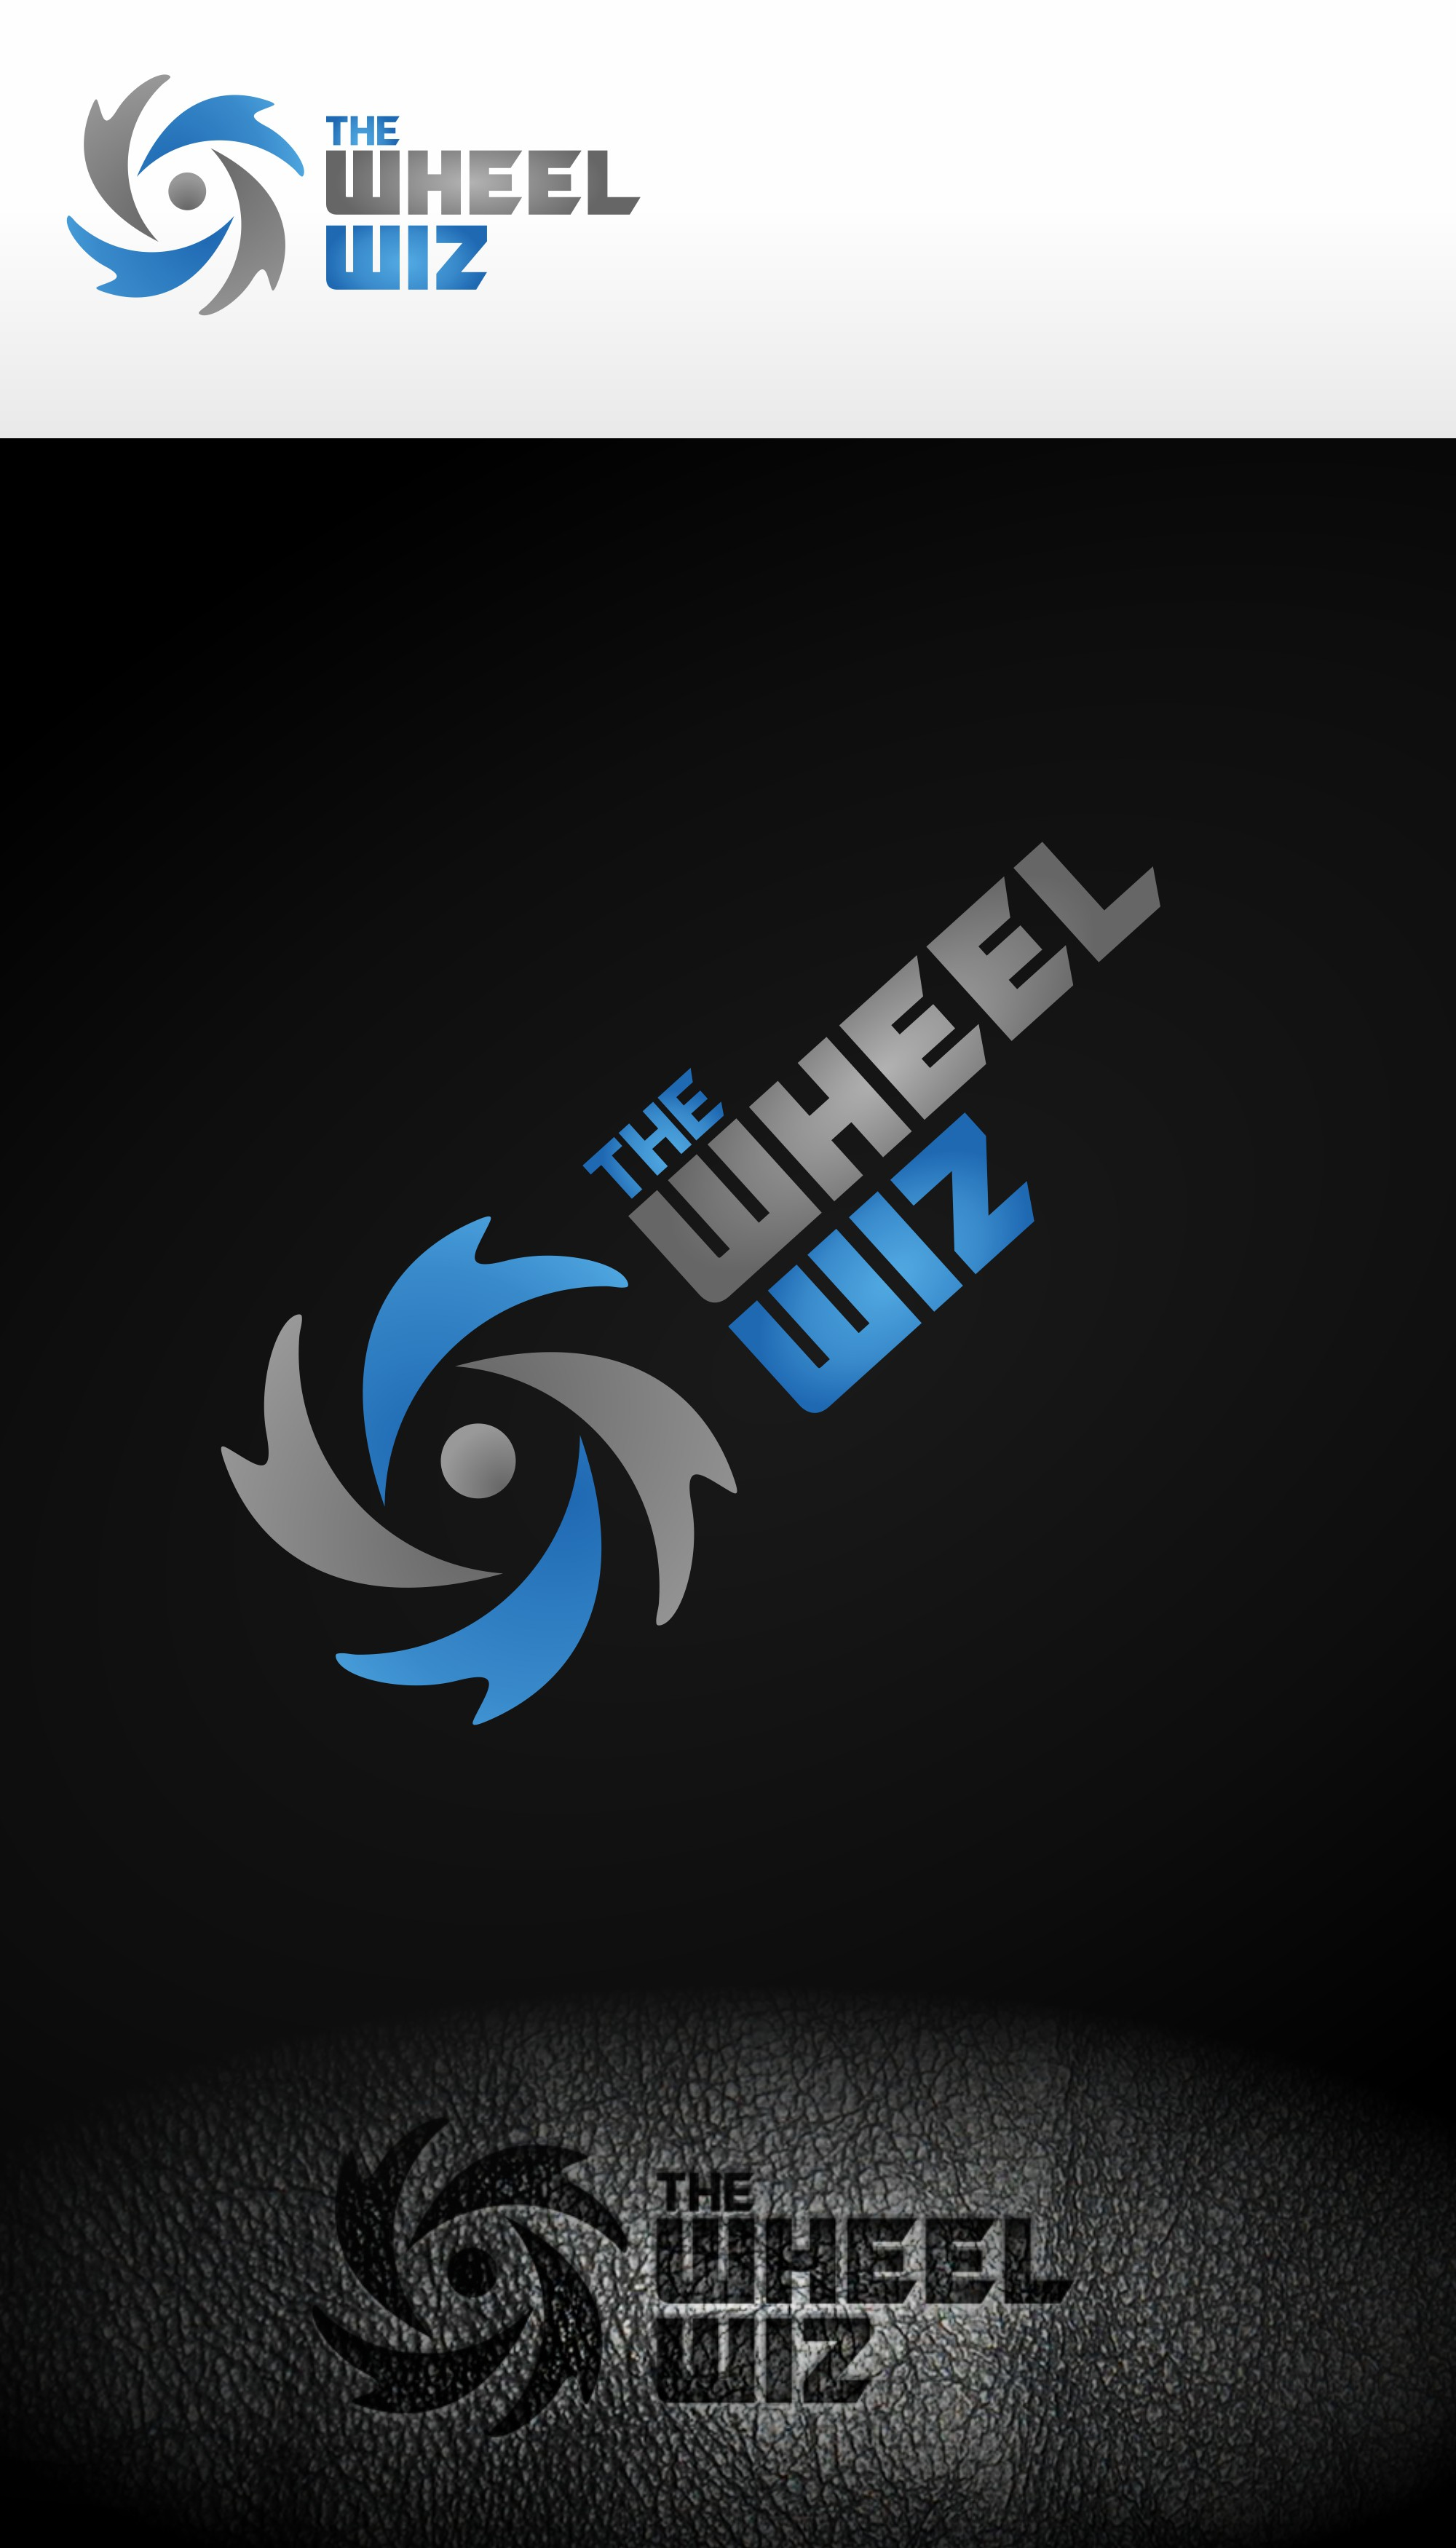 Create a unique logo for The Wheel Wiz rotating water turbine brush